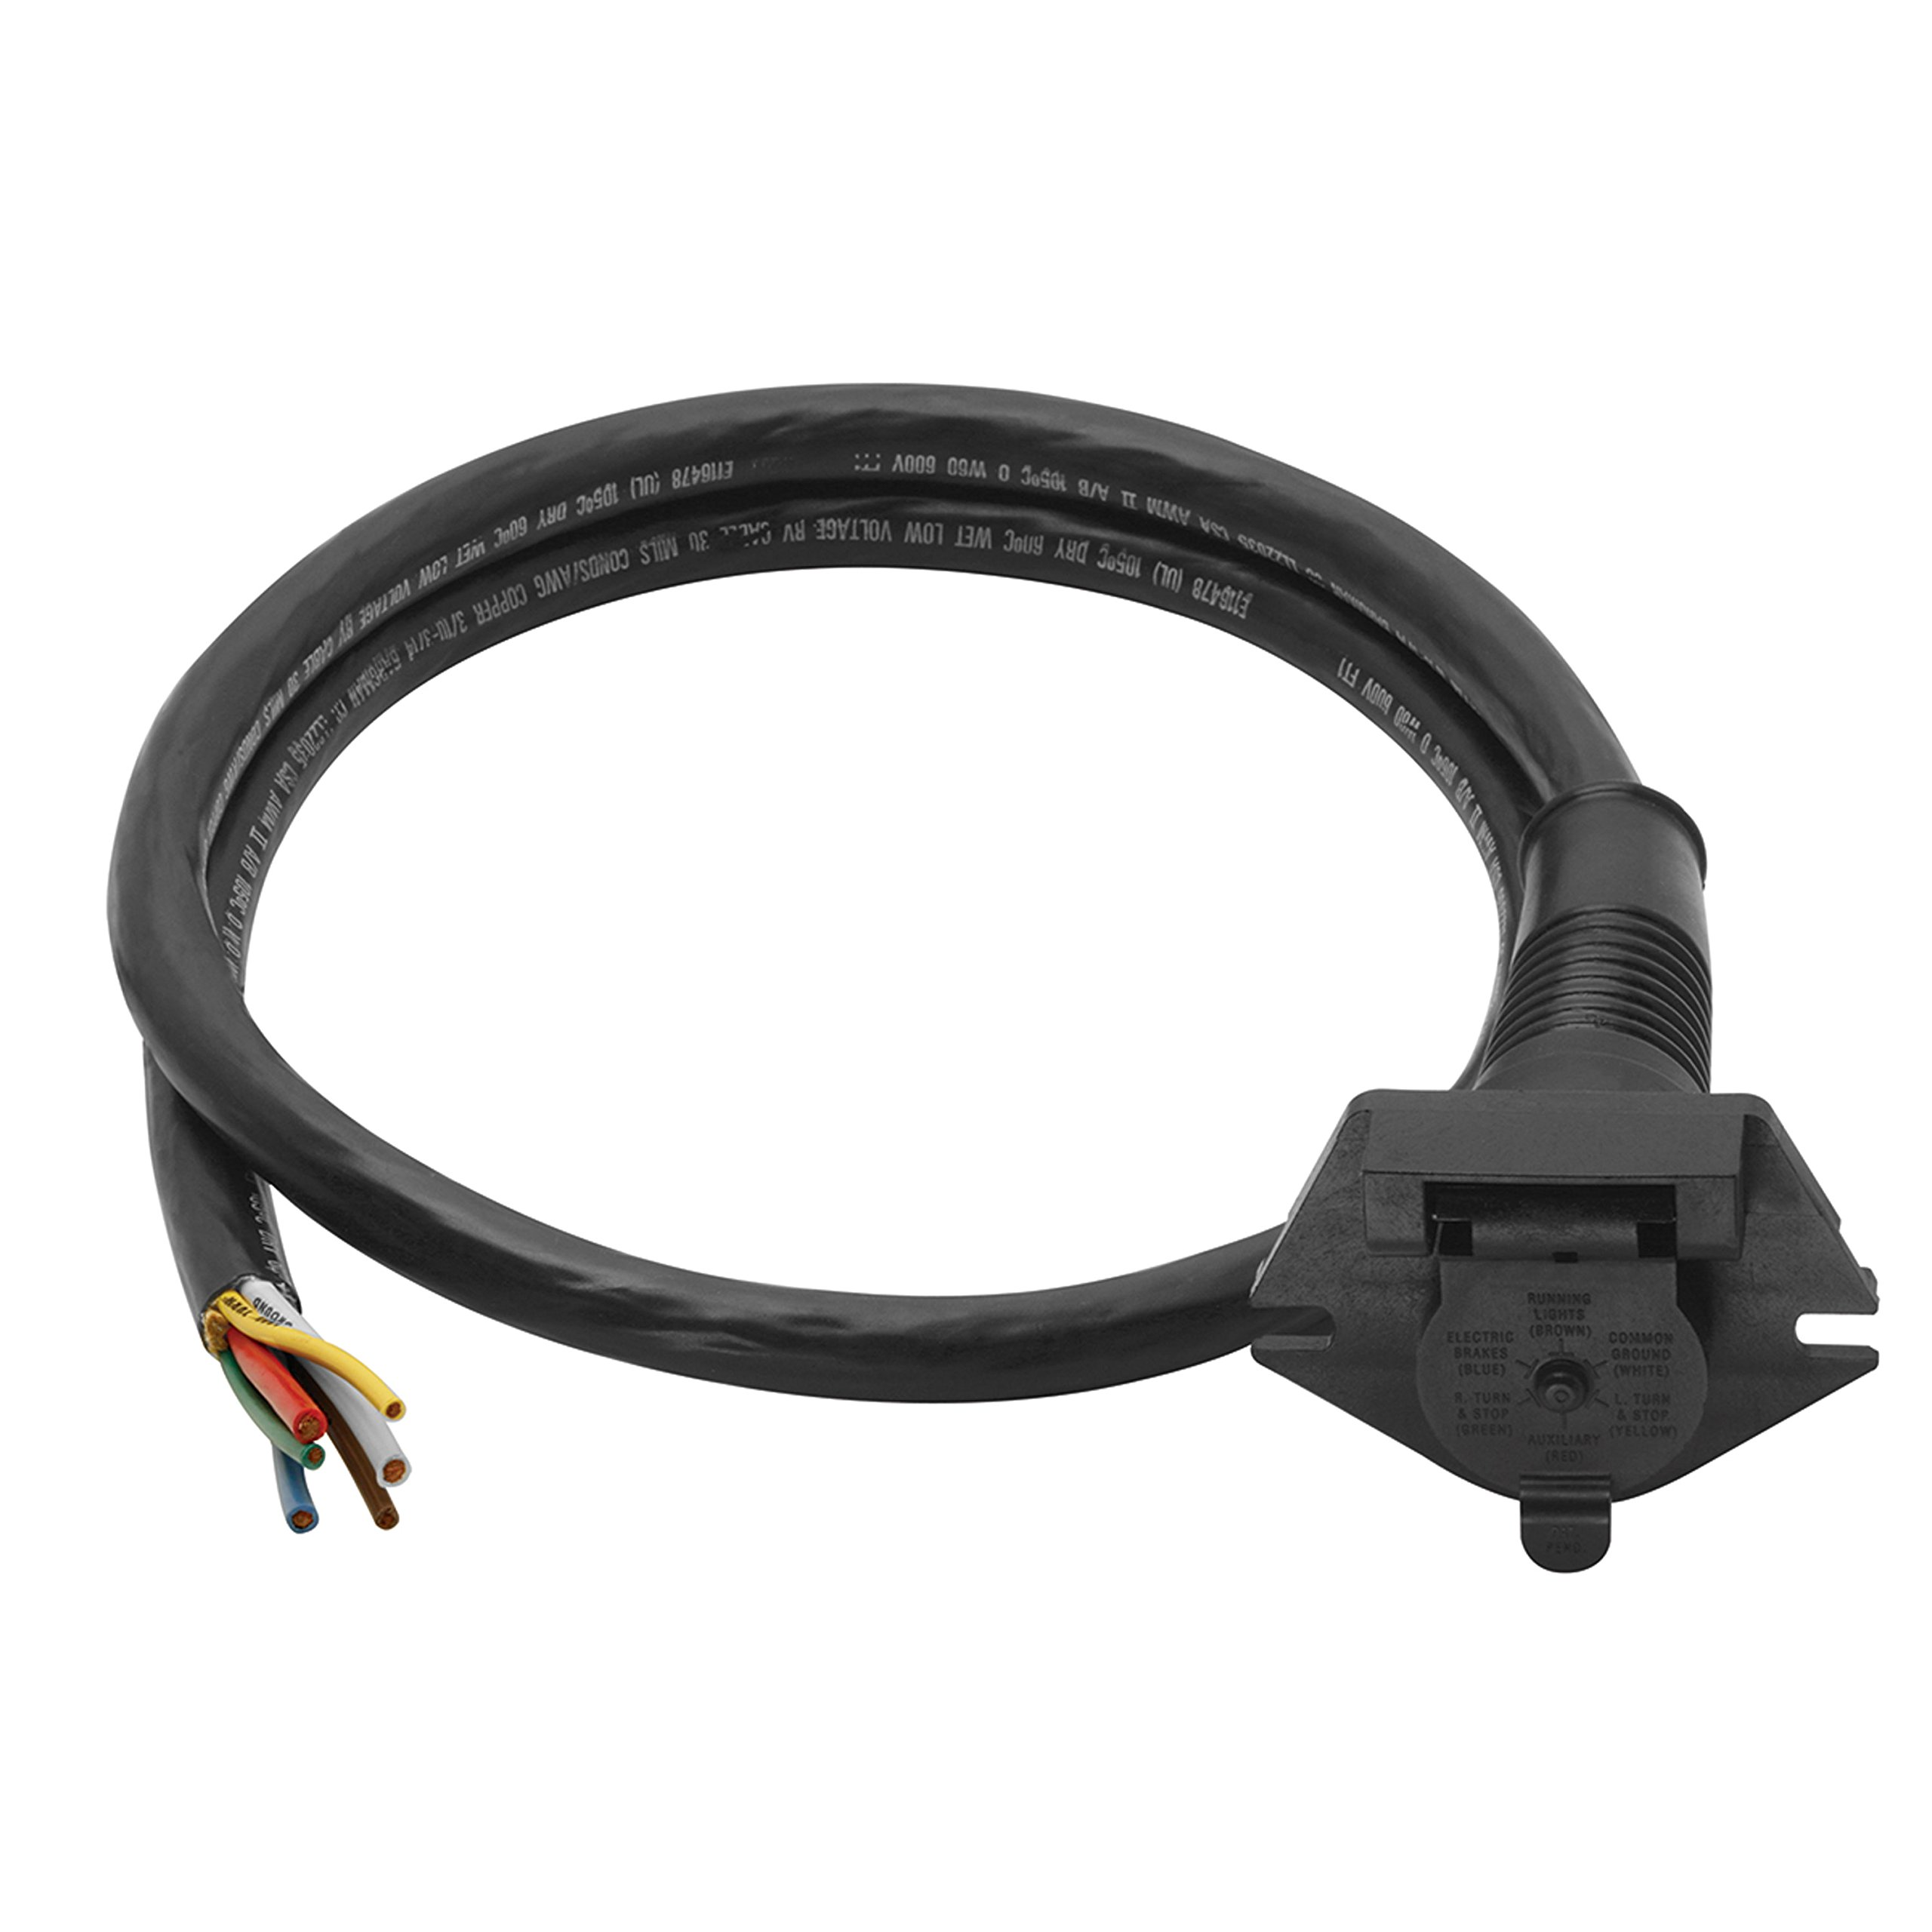 Bragman 6-Way Super Sealed Car End Connectors with 7-Feet Cable